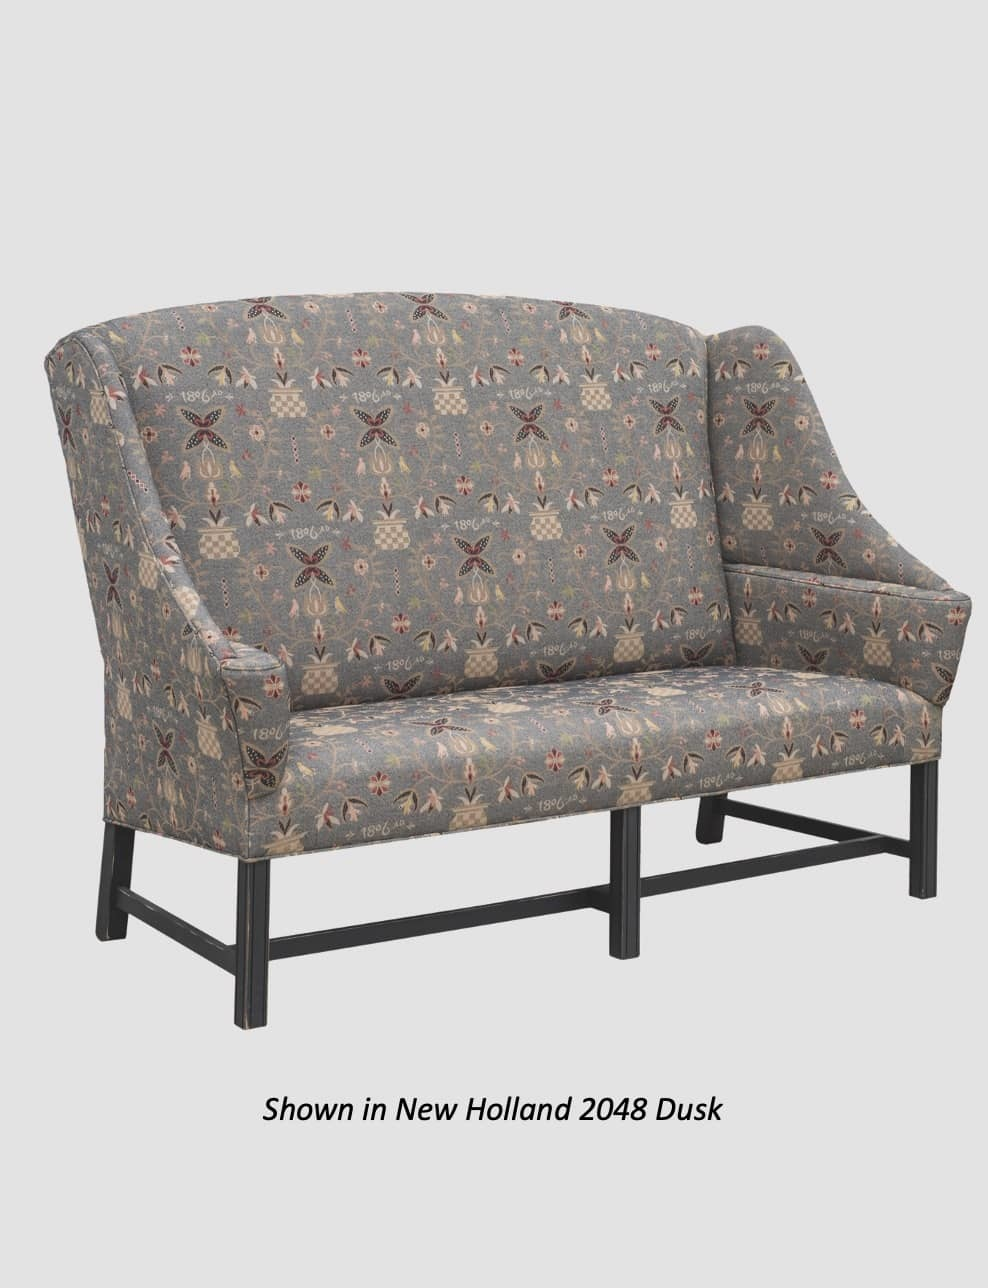 Town & Country Furnishings Millers Creek Sofa from the American Country Collection